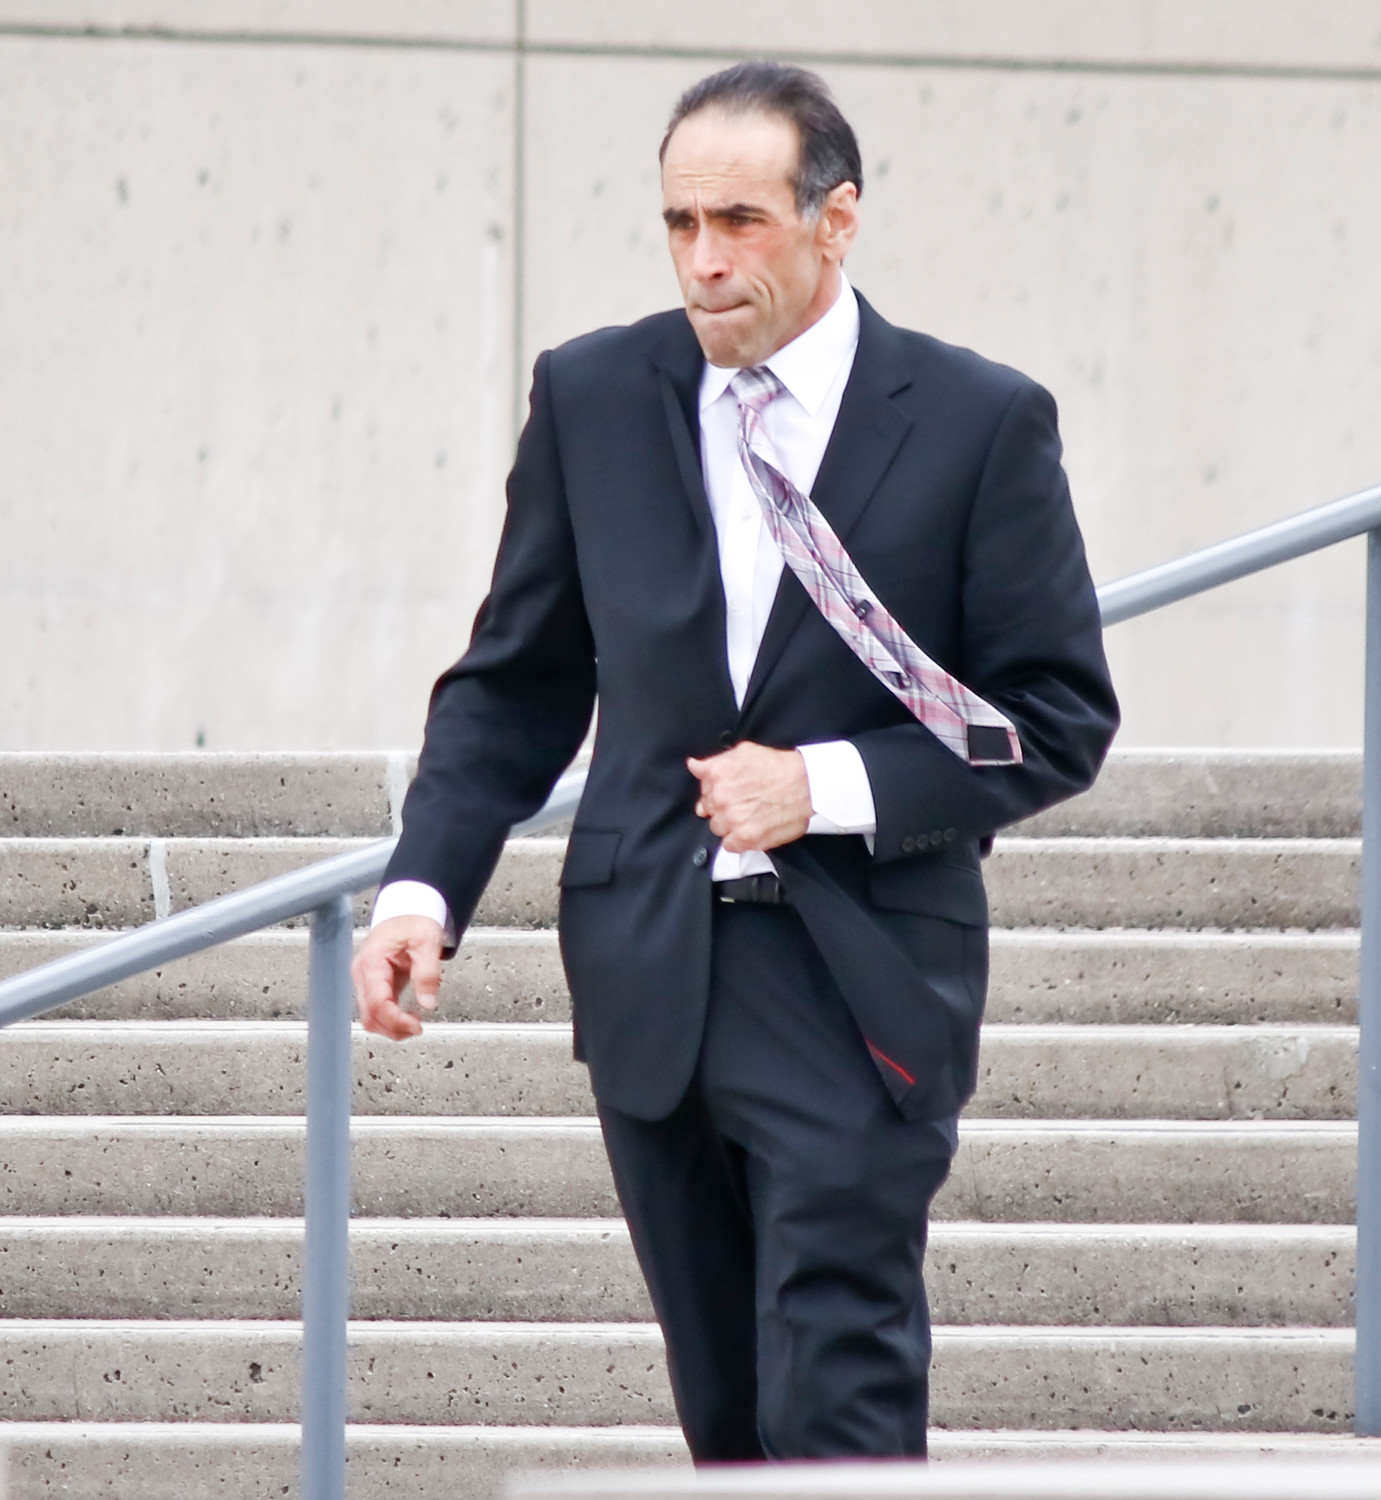 Dr. Michael Belfiore walked out of U.S. District Court in Central Islip on Tuesday. He is on trial for allegedly overprescribing opioids and causing the overdose deaths of two men, and was implicated, but not charged, in the death of another.